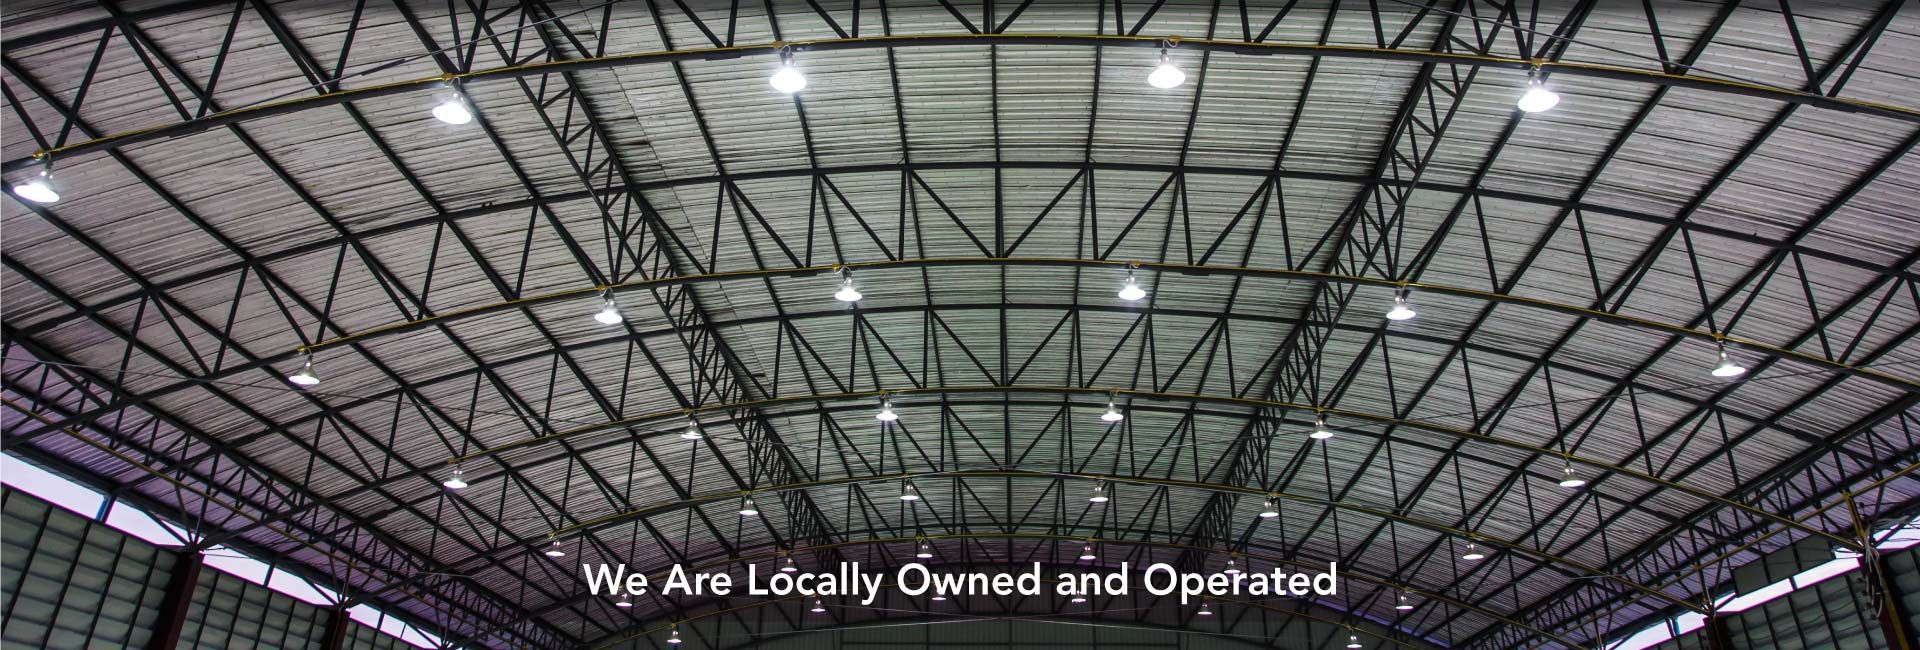 We Are Locally Owned and Operated | Metal sheet roof of indoor stadium